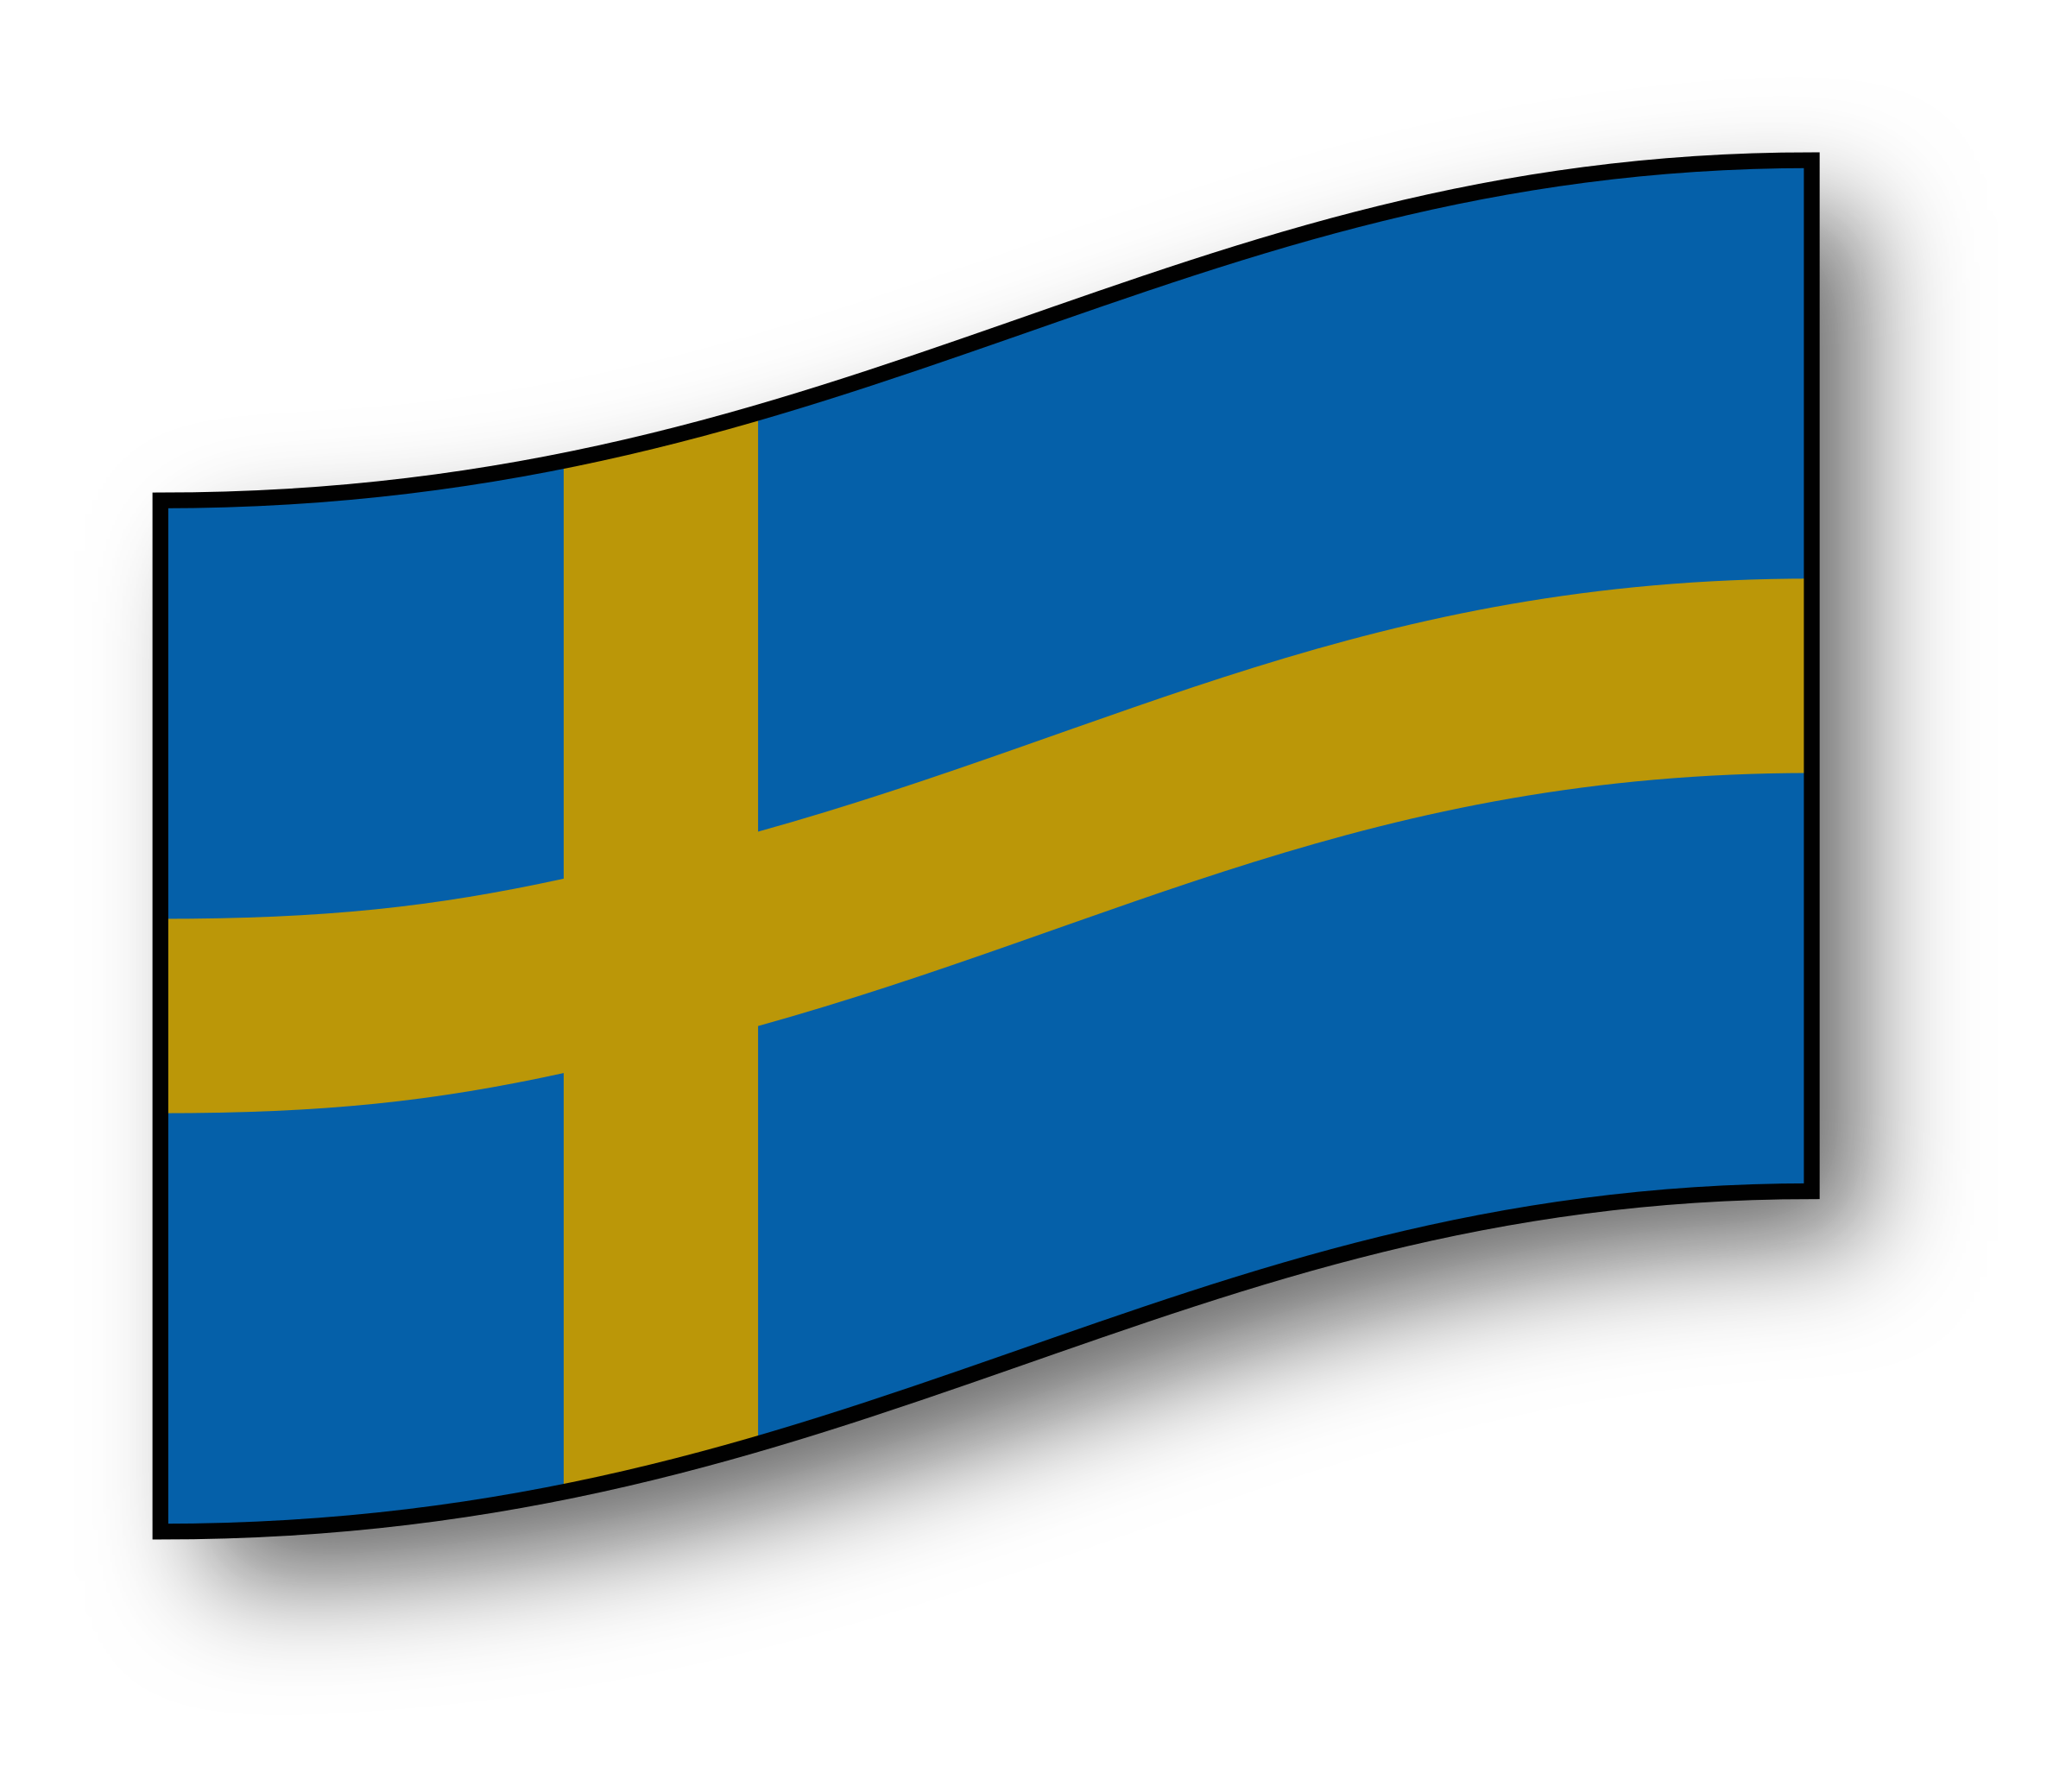 Sweden flag by GMcGlinn